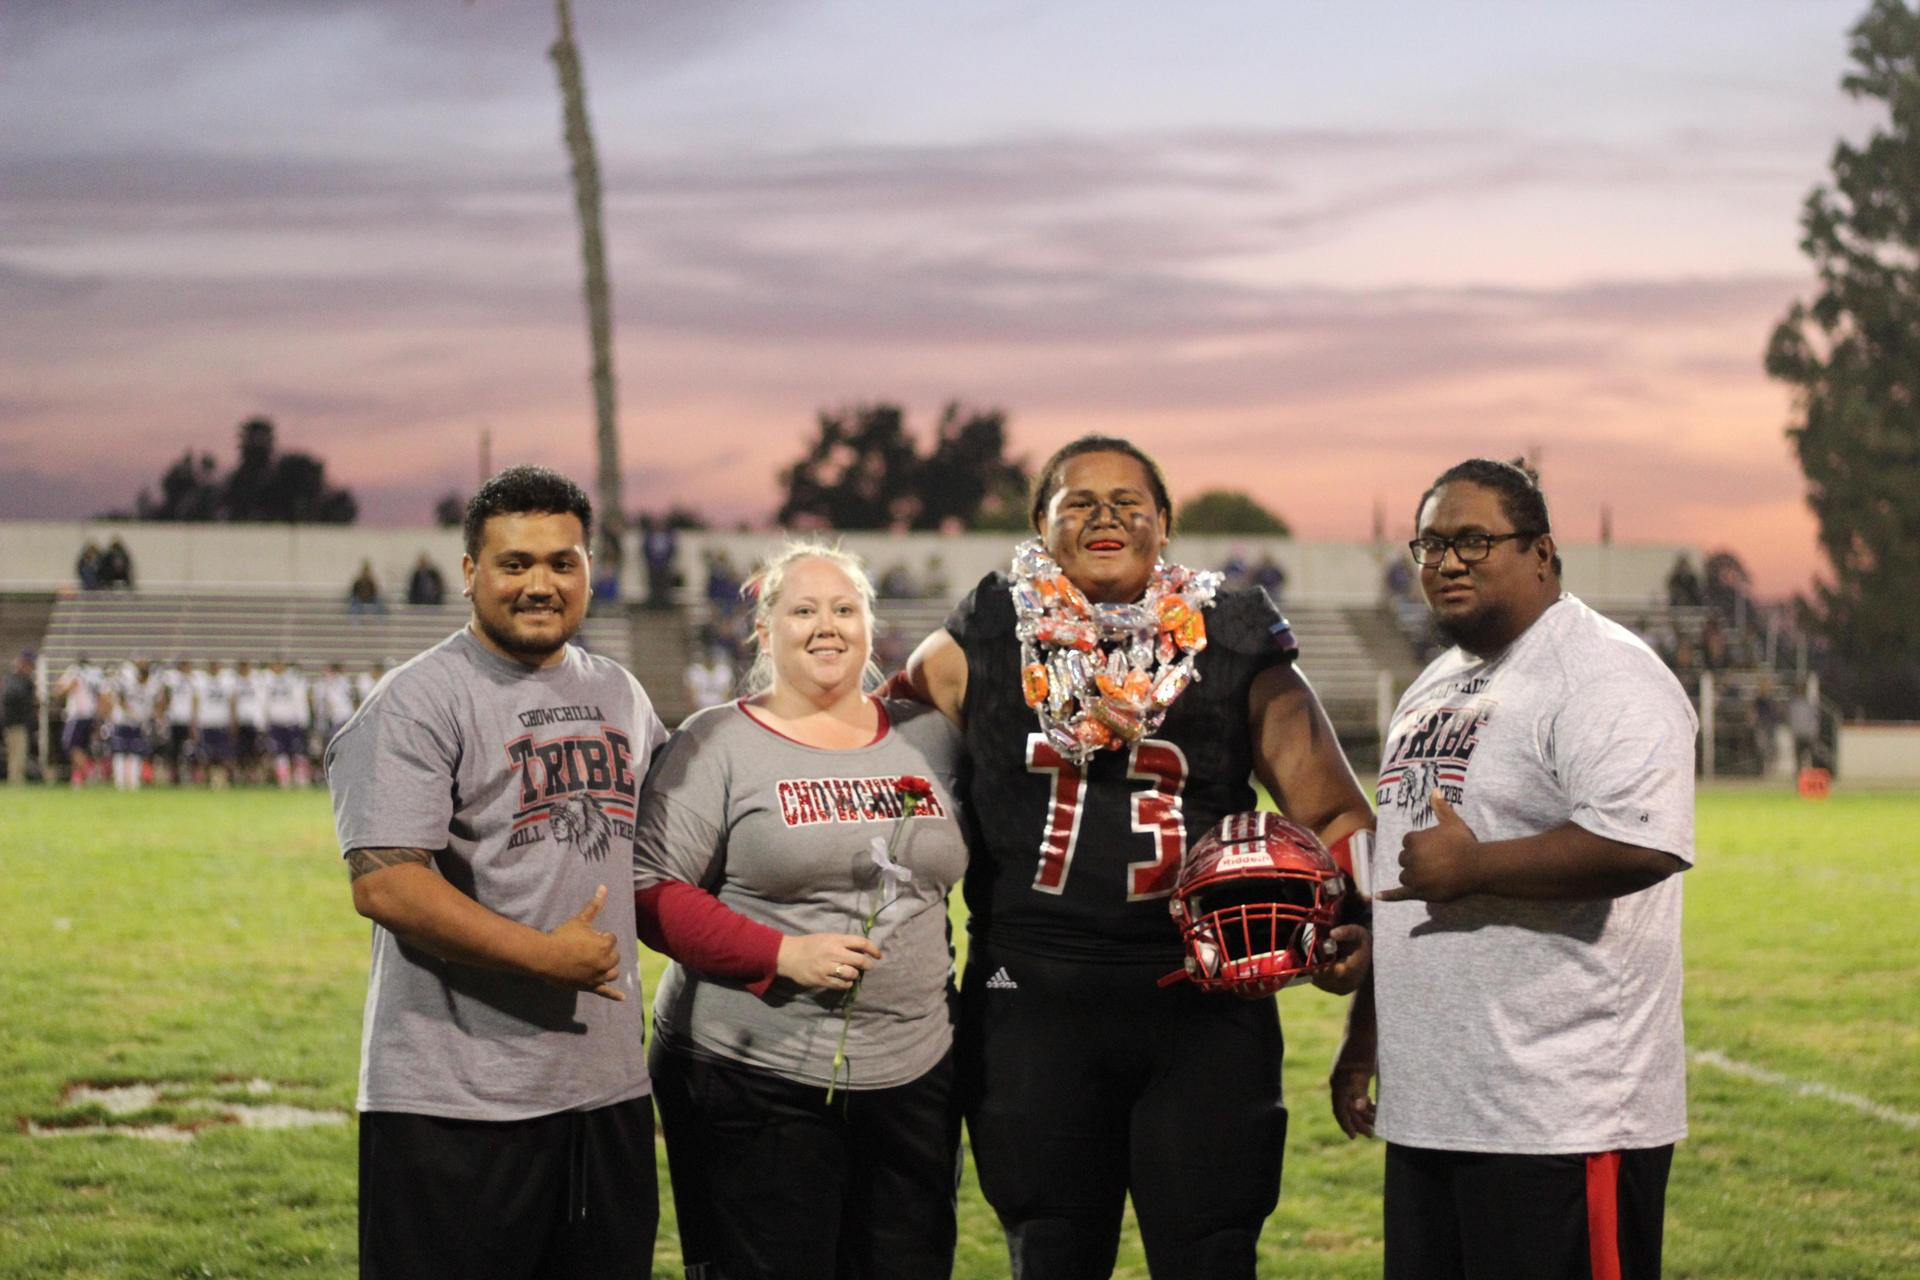 Senior football player Alfred Maui Laloata and his escorts.